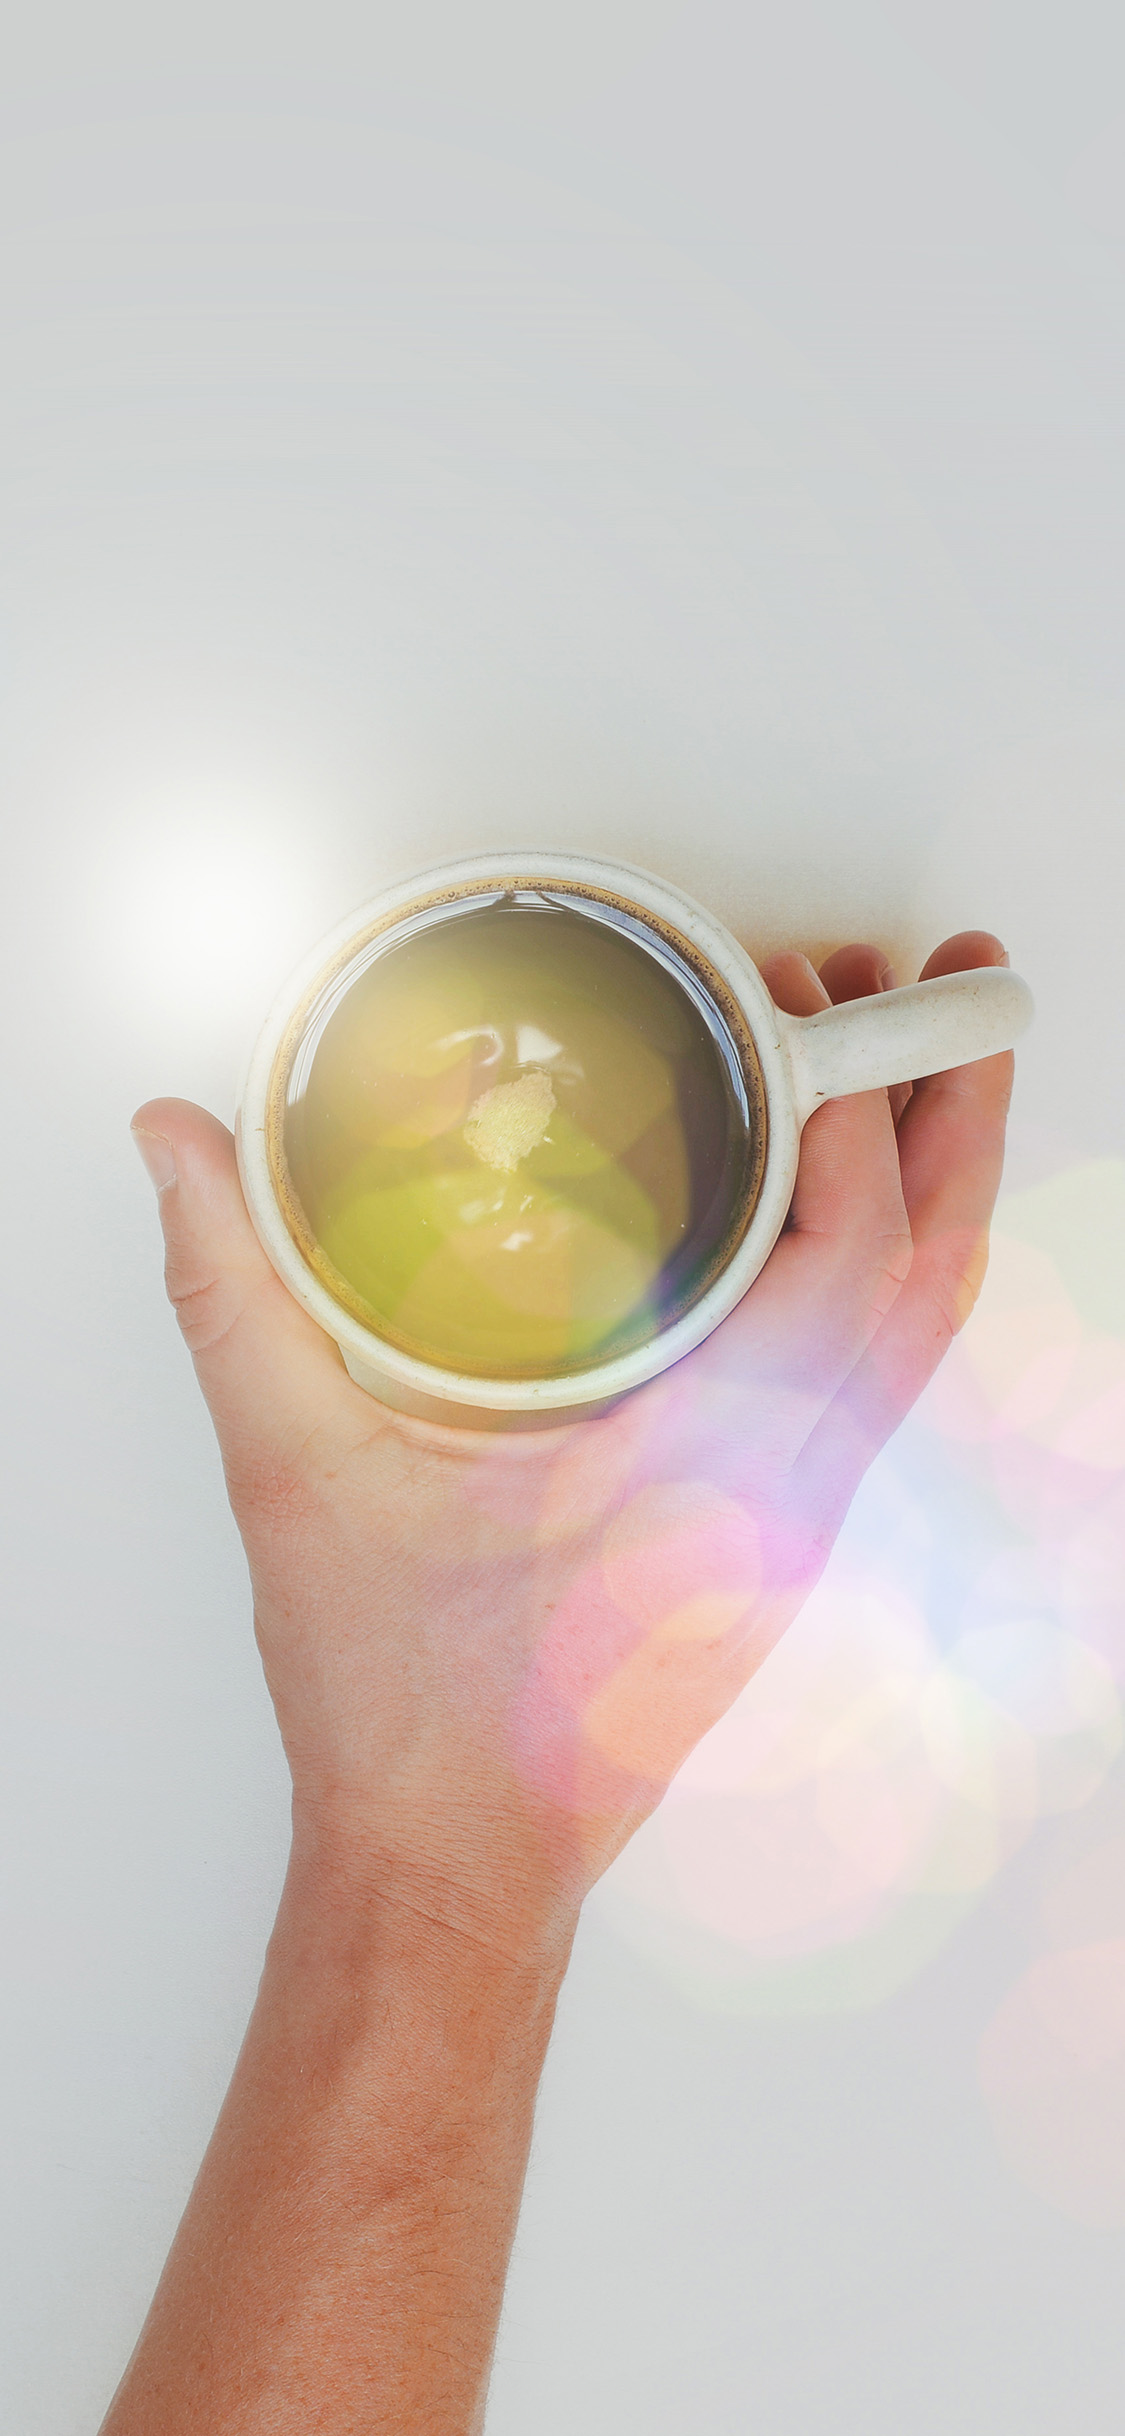 iPhonexpapers.com-Apple-iPhone-wallpaper-mv27-coffee-cup-hand-city-life-good-morning-flare